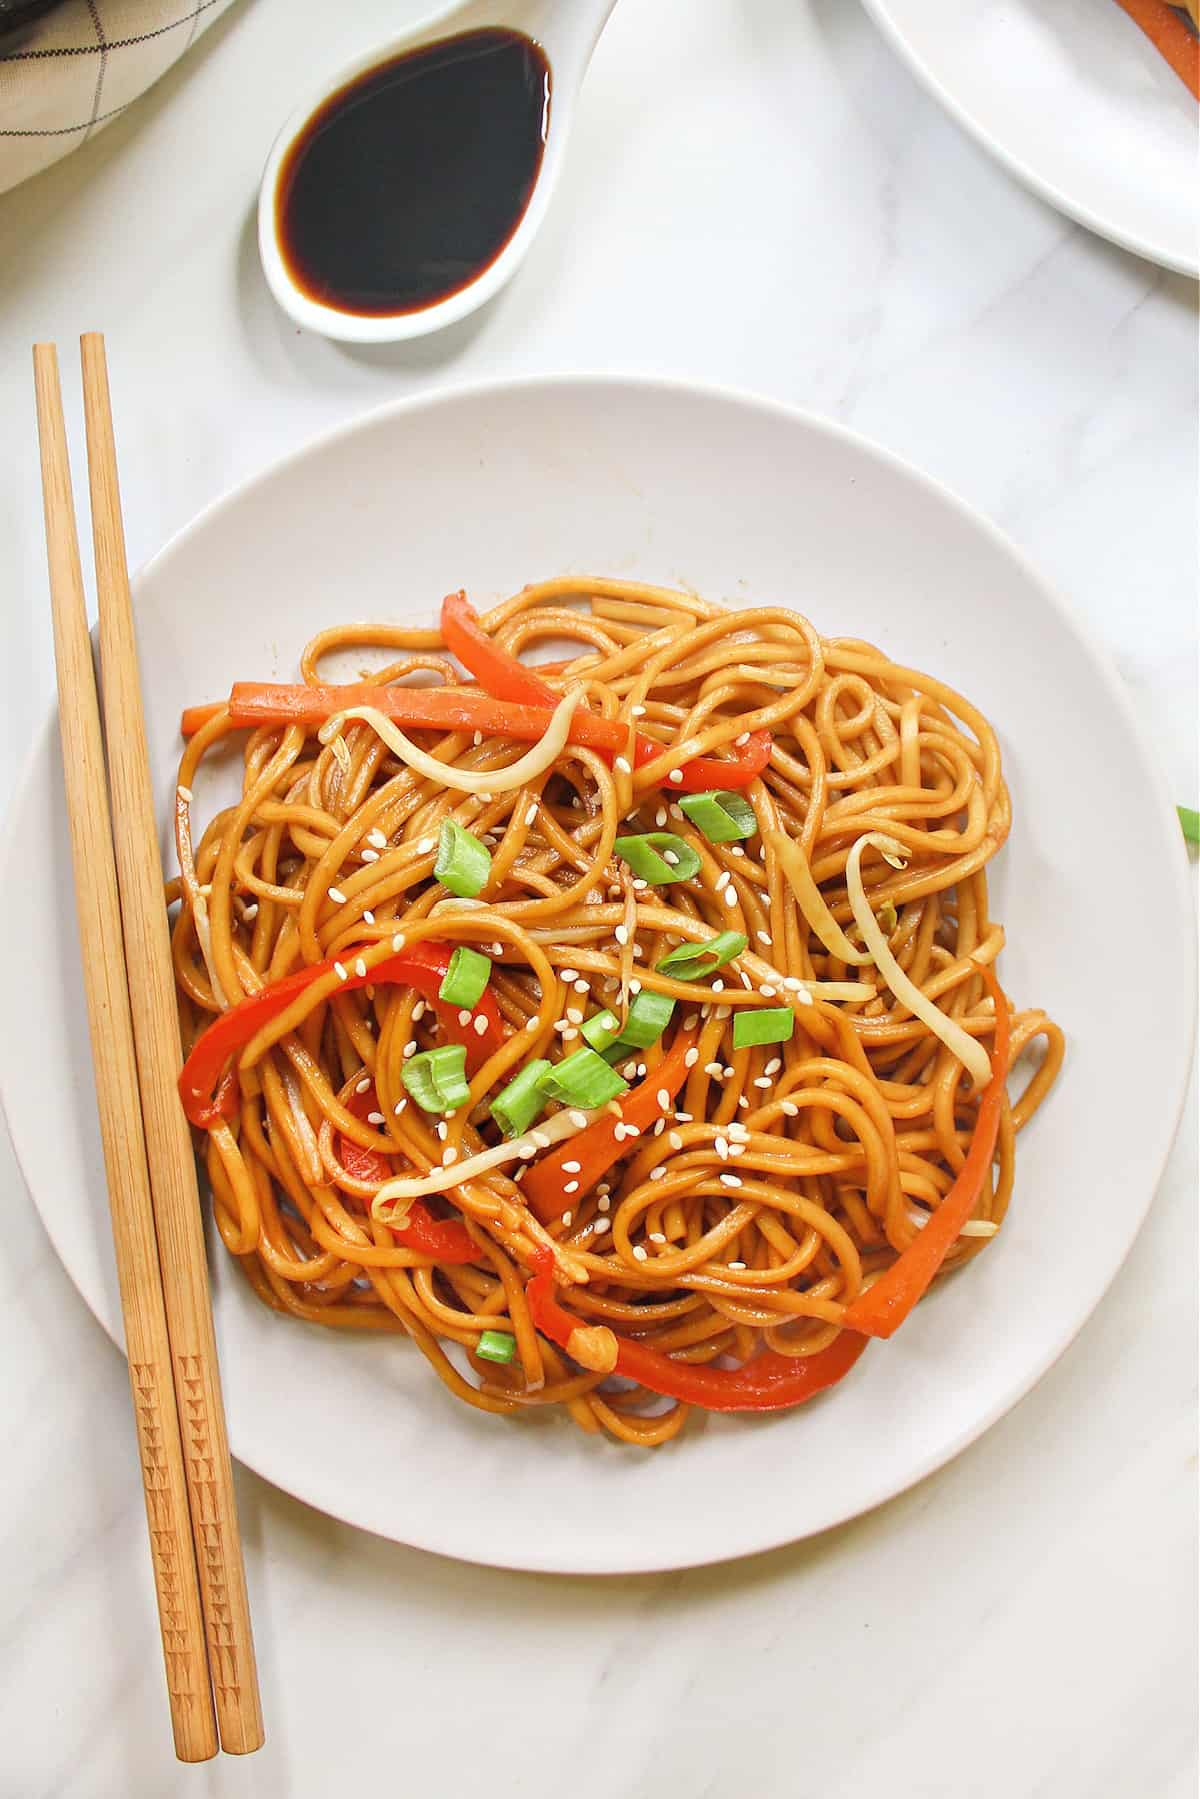 Overhead view of fully cooked vegetable lo mein on a white plate with chopsticks on the side.